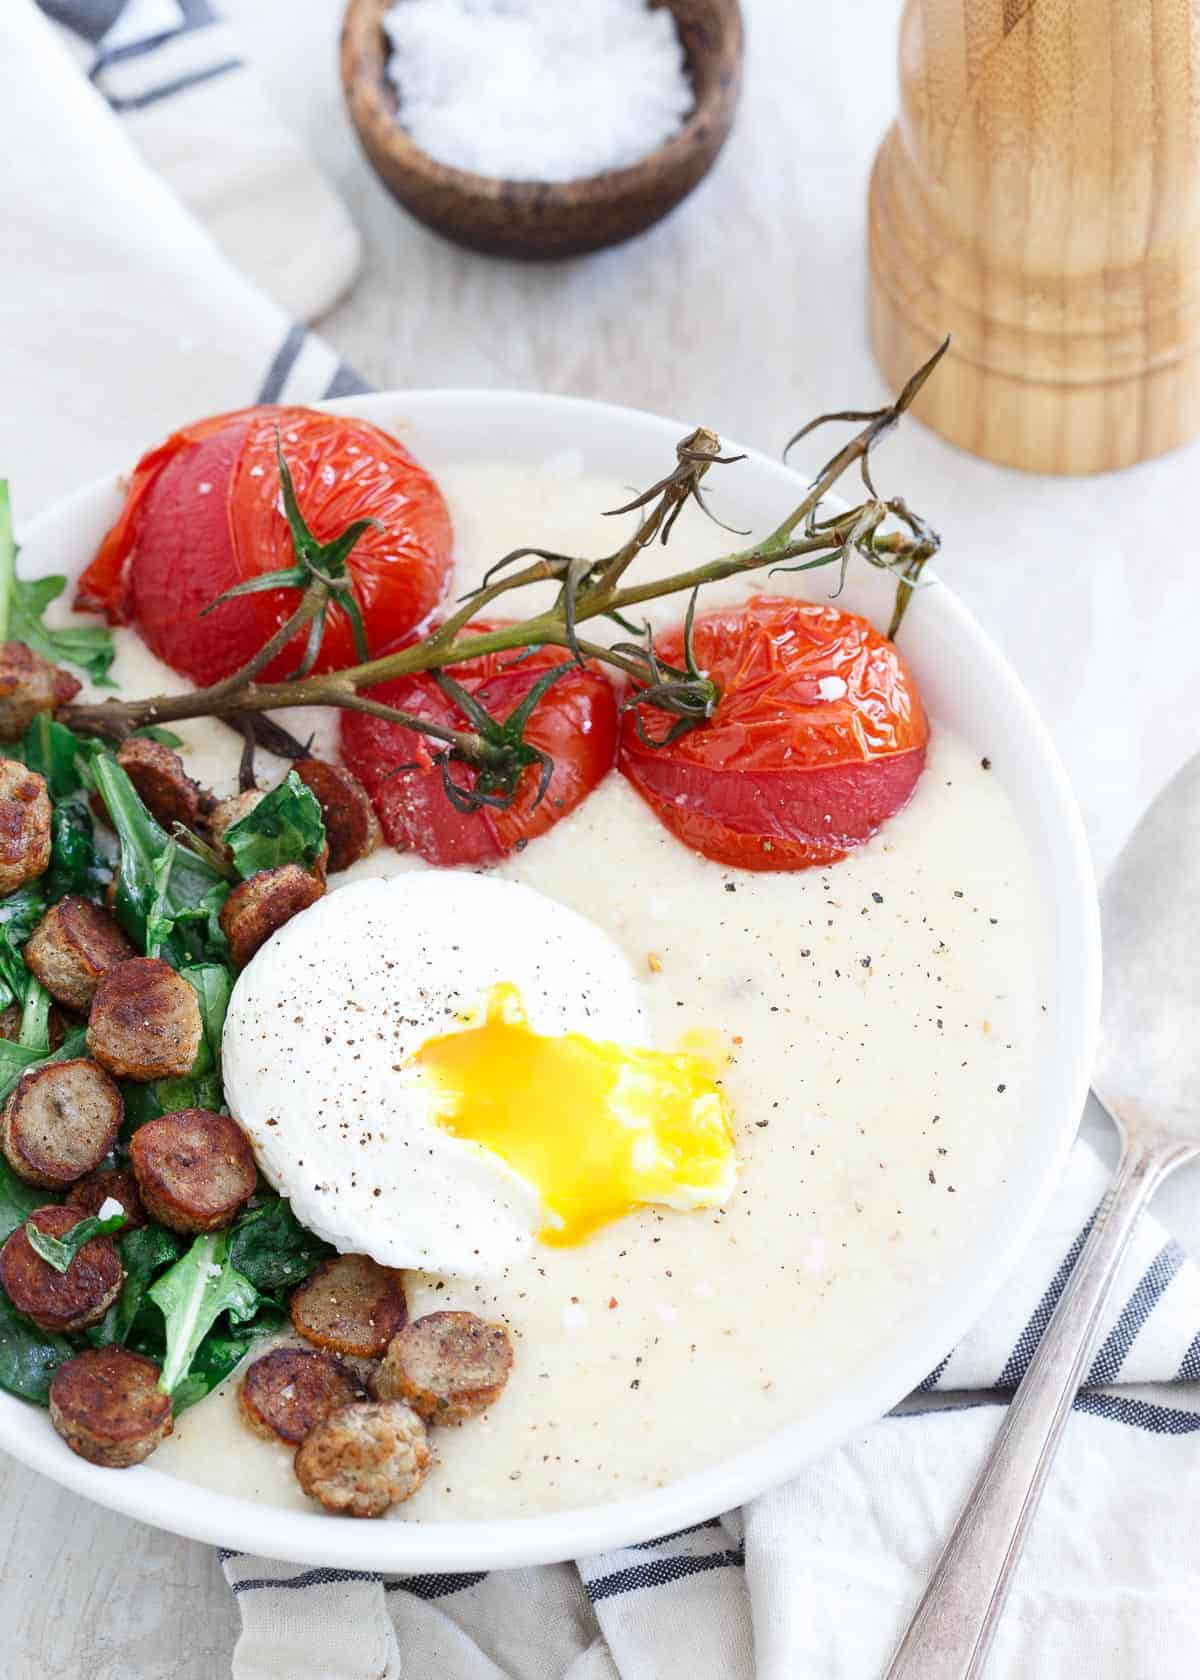 These cheddar cheese grits are topped with a chicken sausage baby greens sauté, oven burst vine ripe tomatoes and a perfectly poached runny egg.